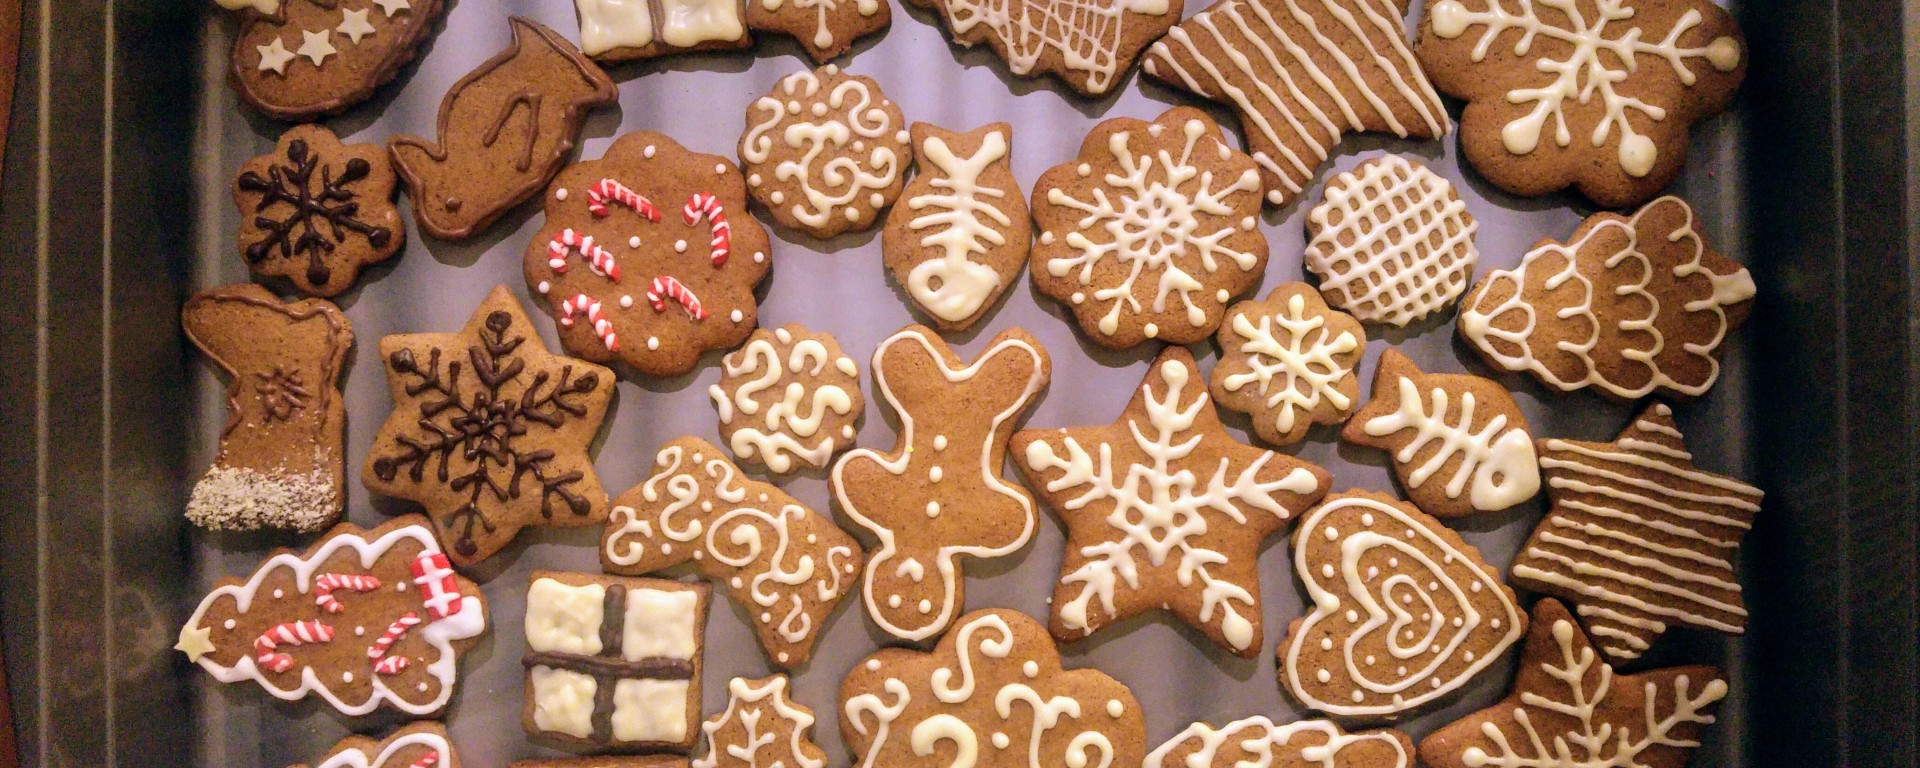 Gingerbread cookies decorated with dark and white chocolate